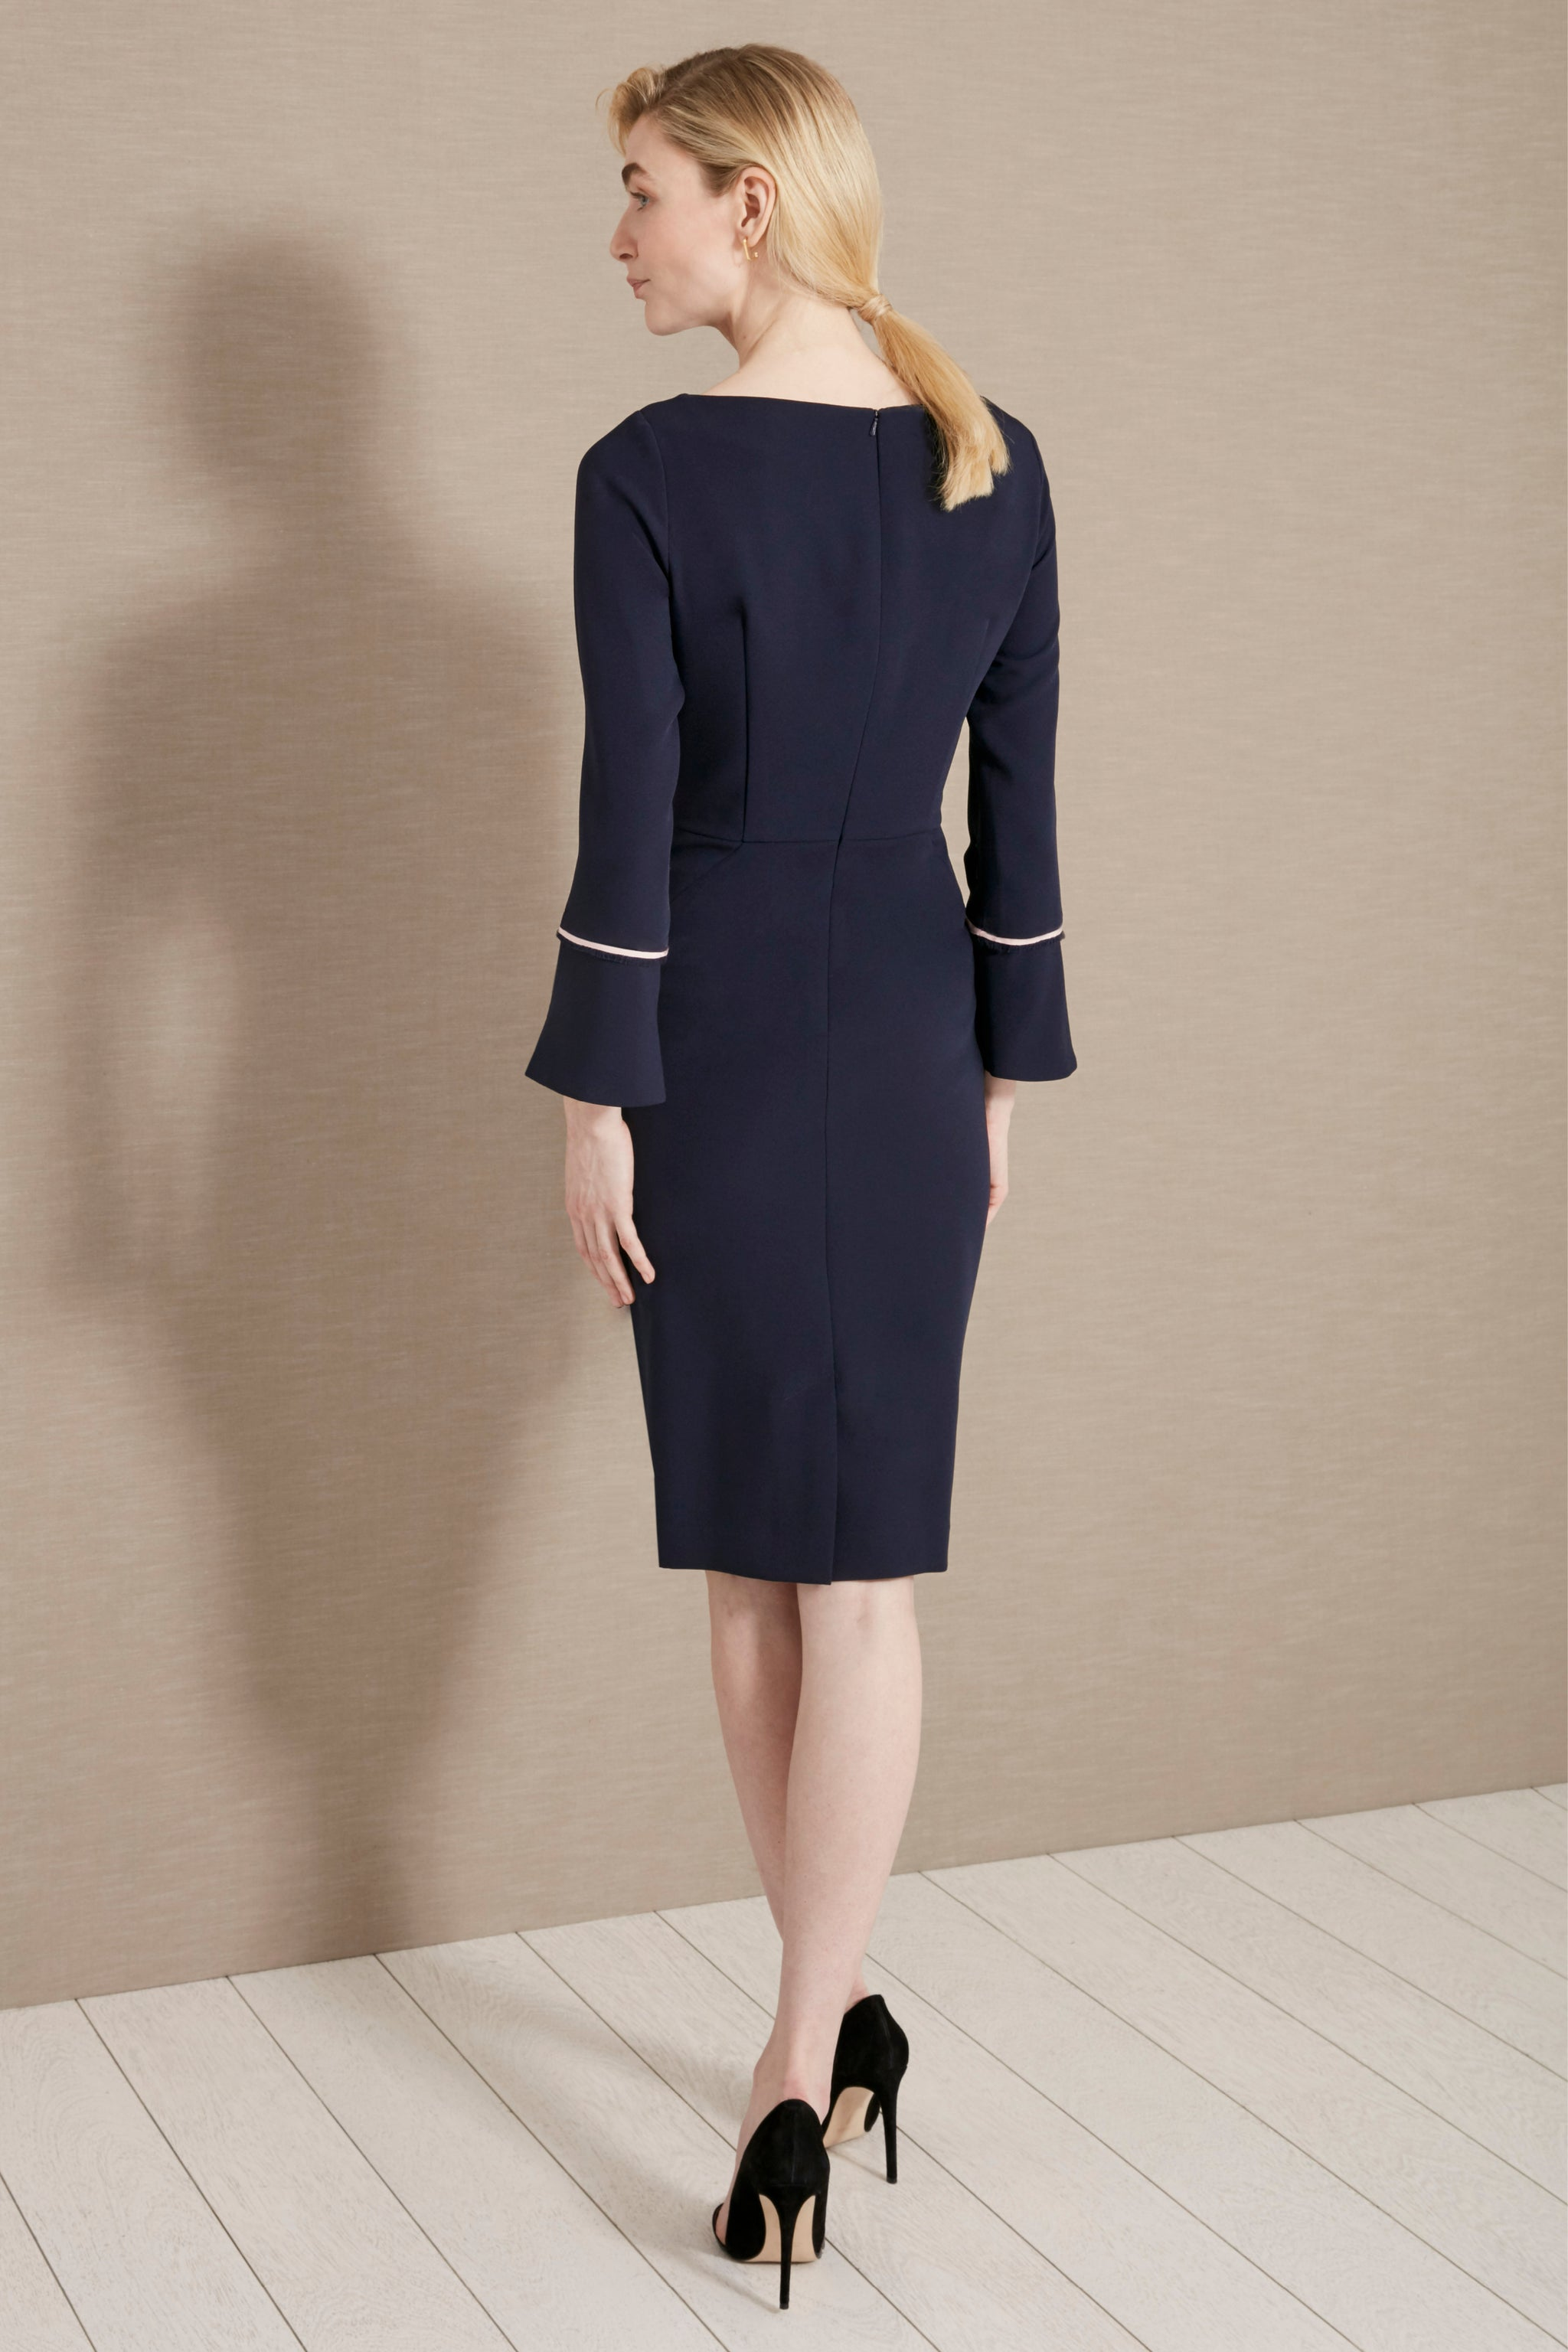 Serpentine Navy Dress